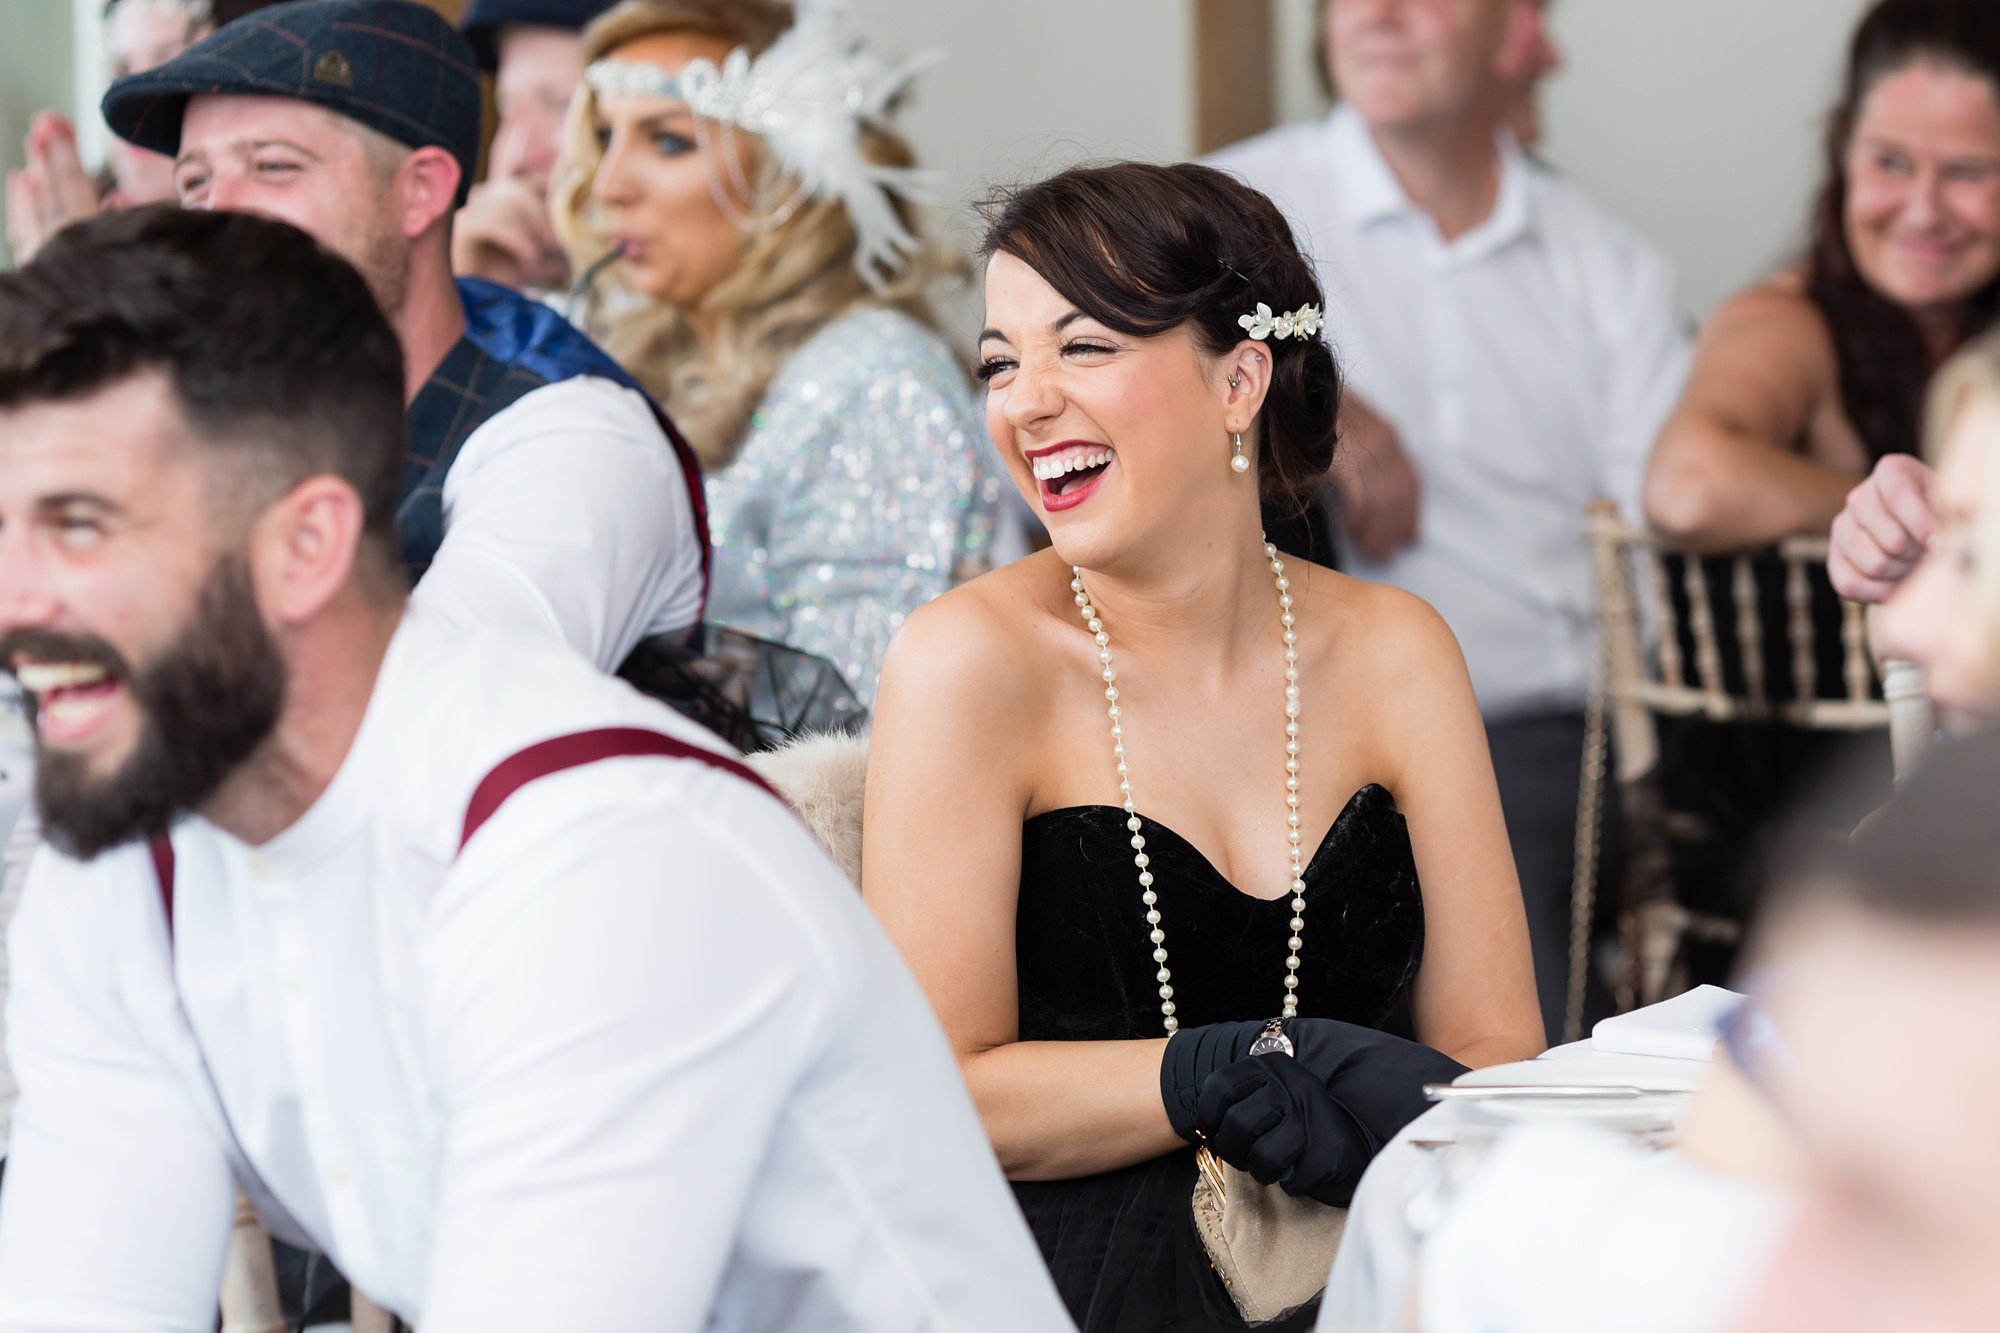 Wedding guest wearing flapper style dress and laughing during speeches.